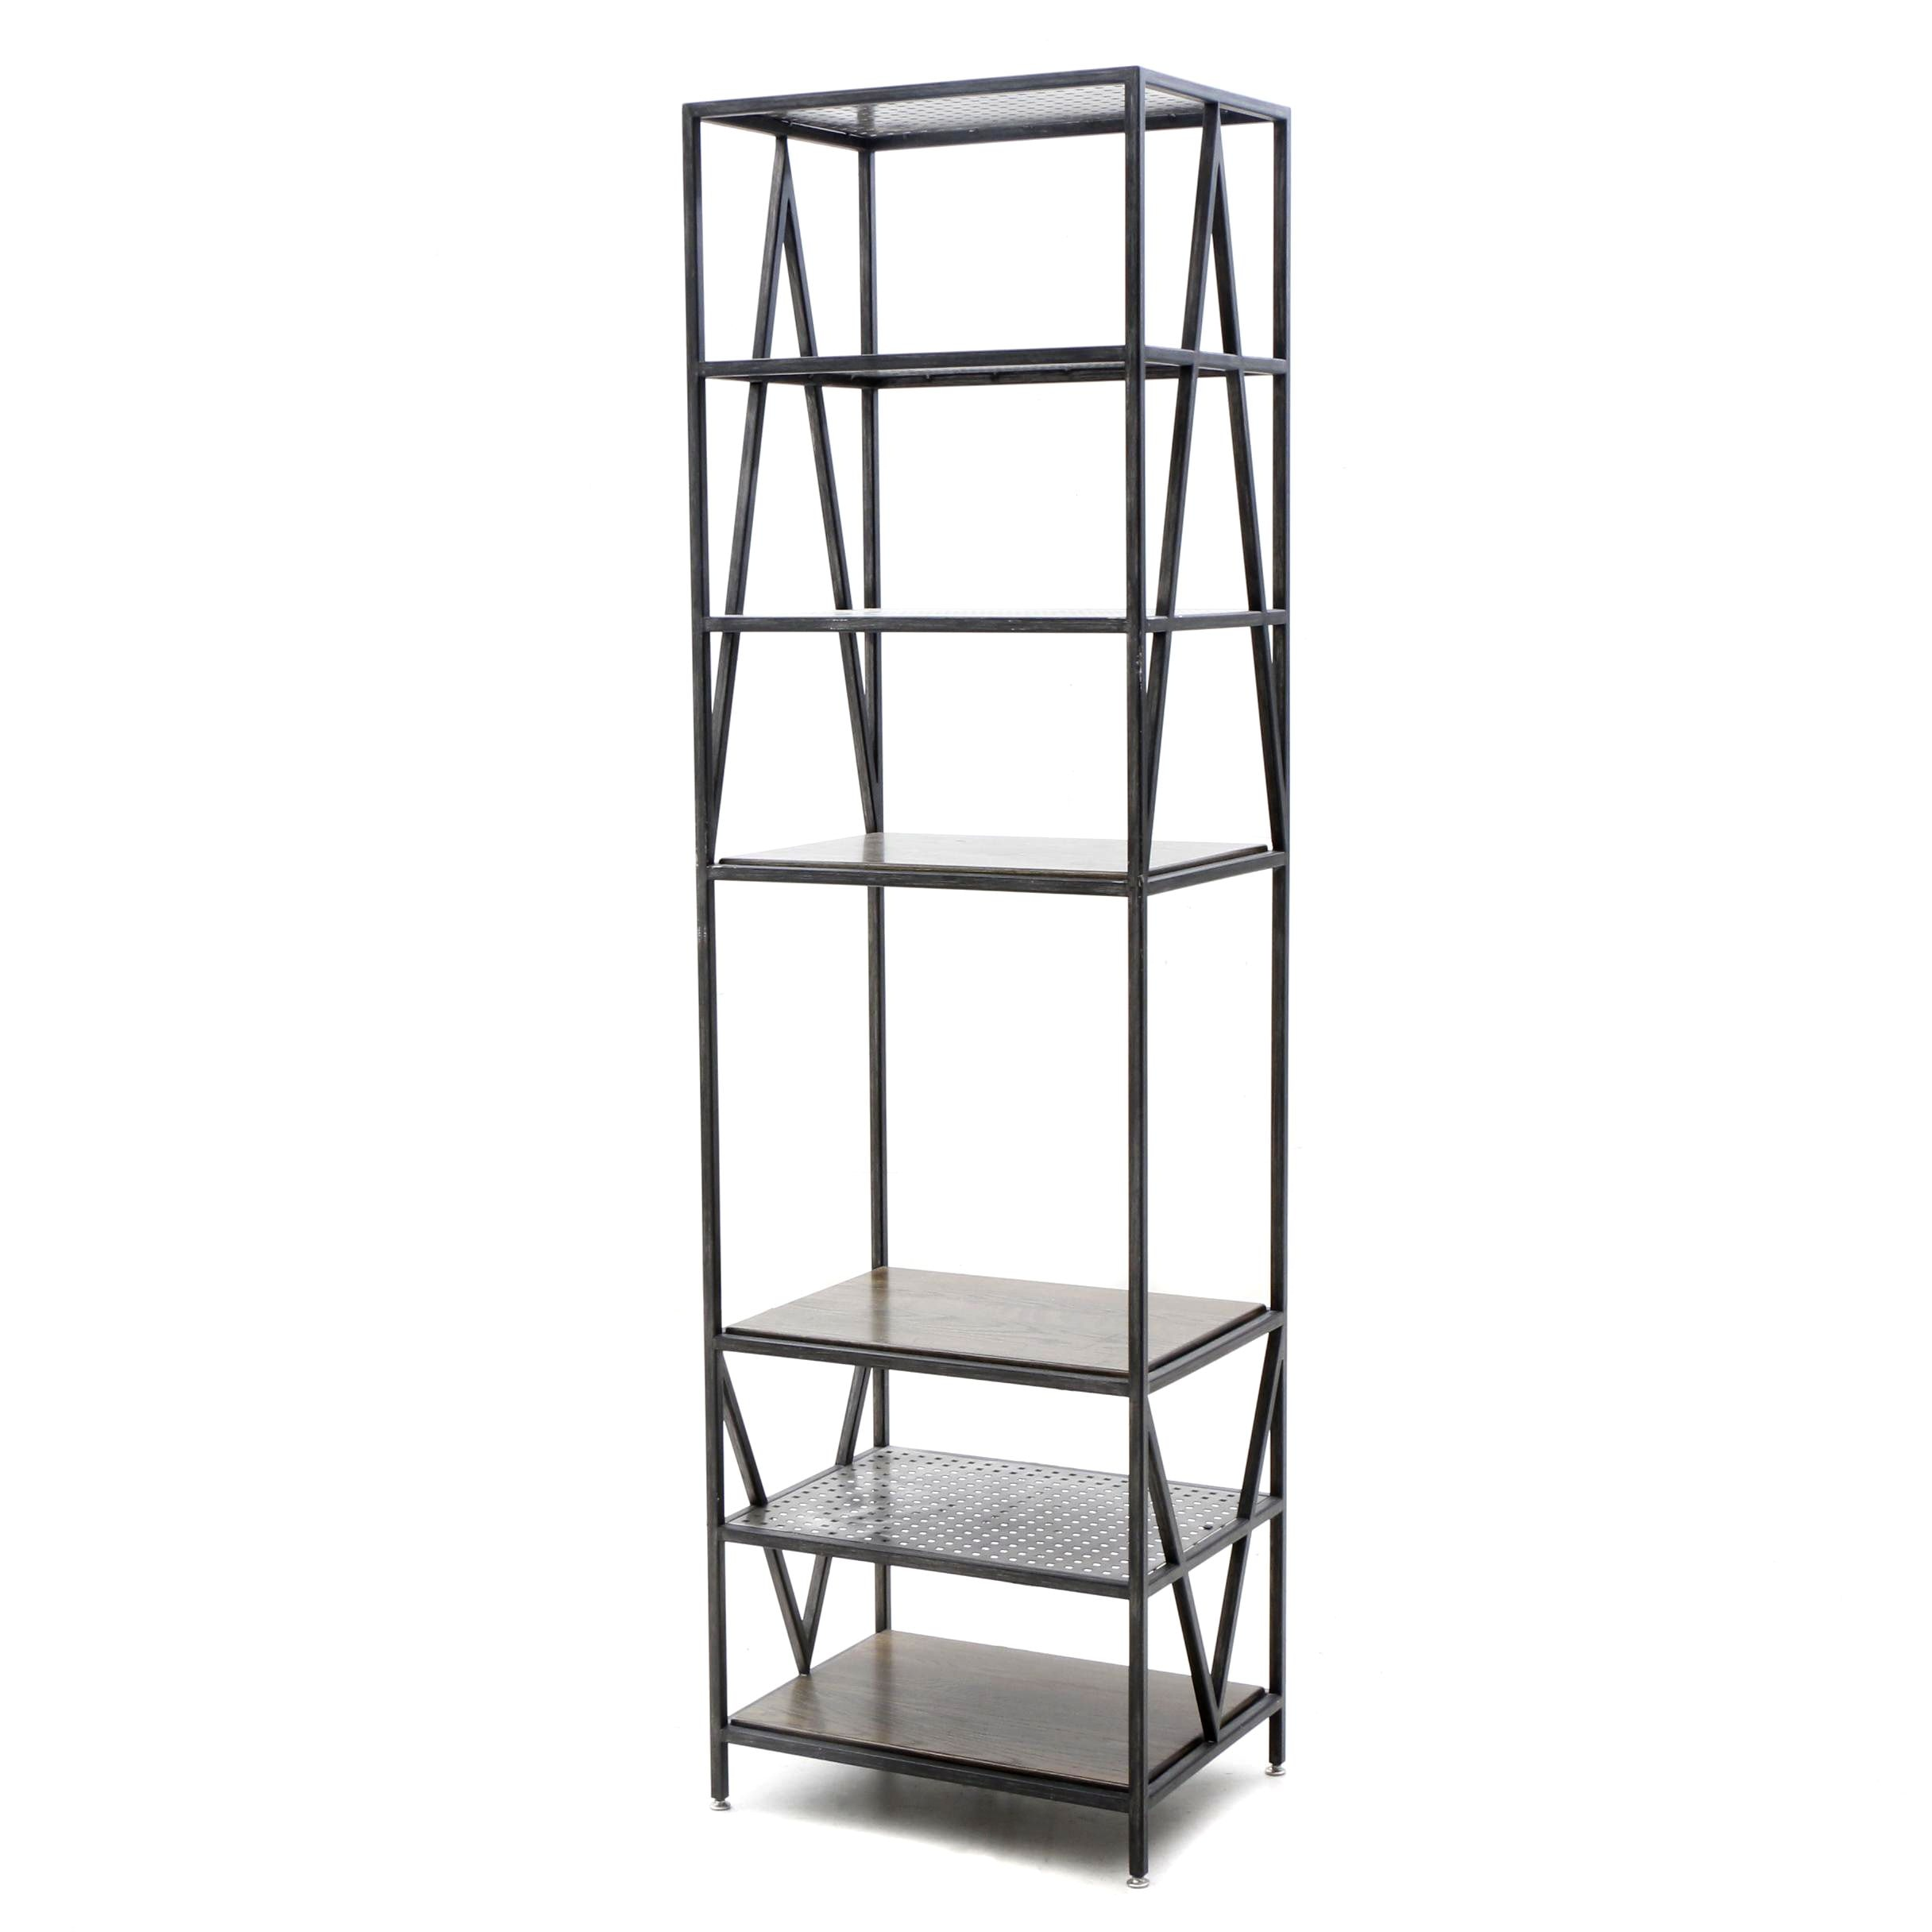 Industrial Style Etagere Shelving Unit